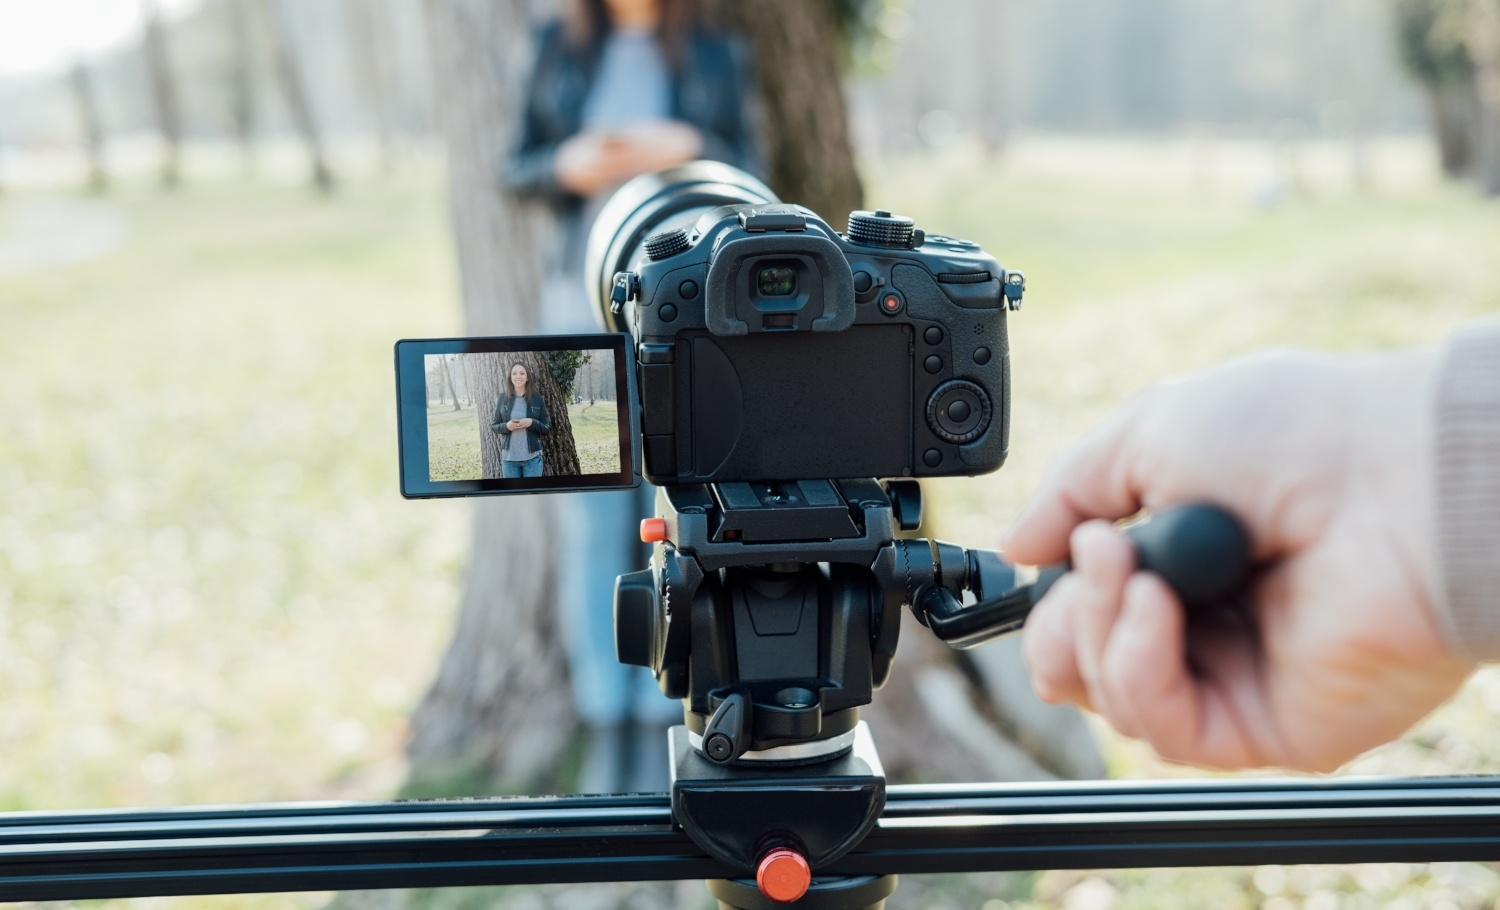 Should You Buy a DSLR Camera in 2019? (4 Reasons Why You Shouldn't)